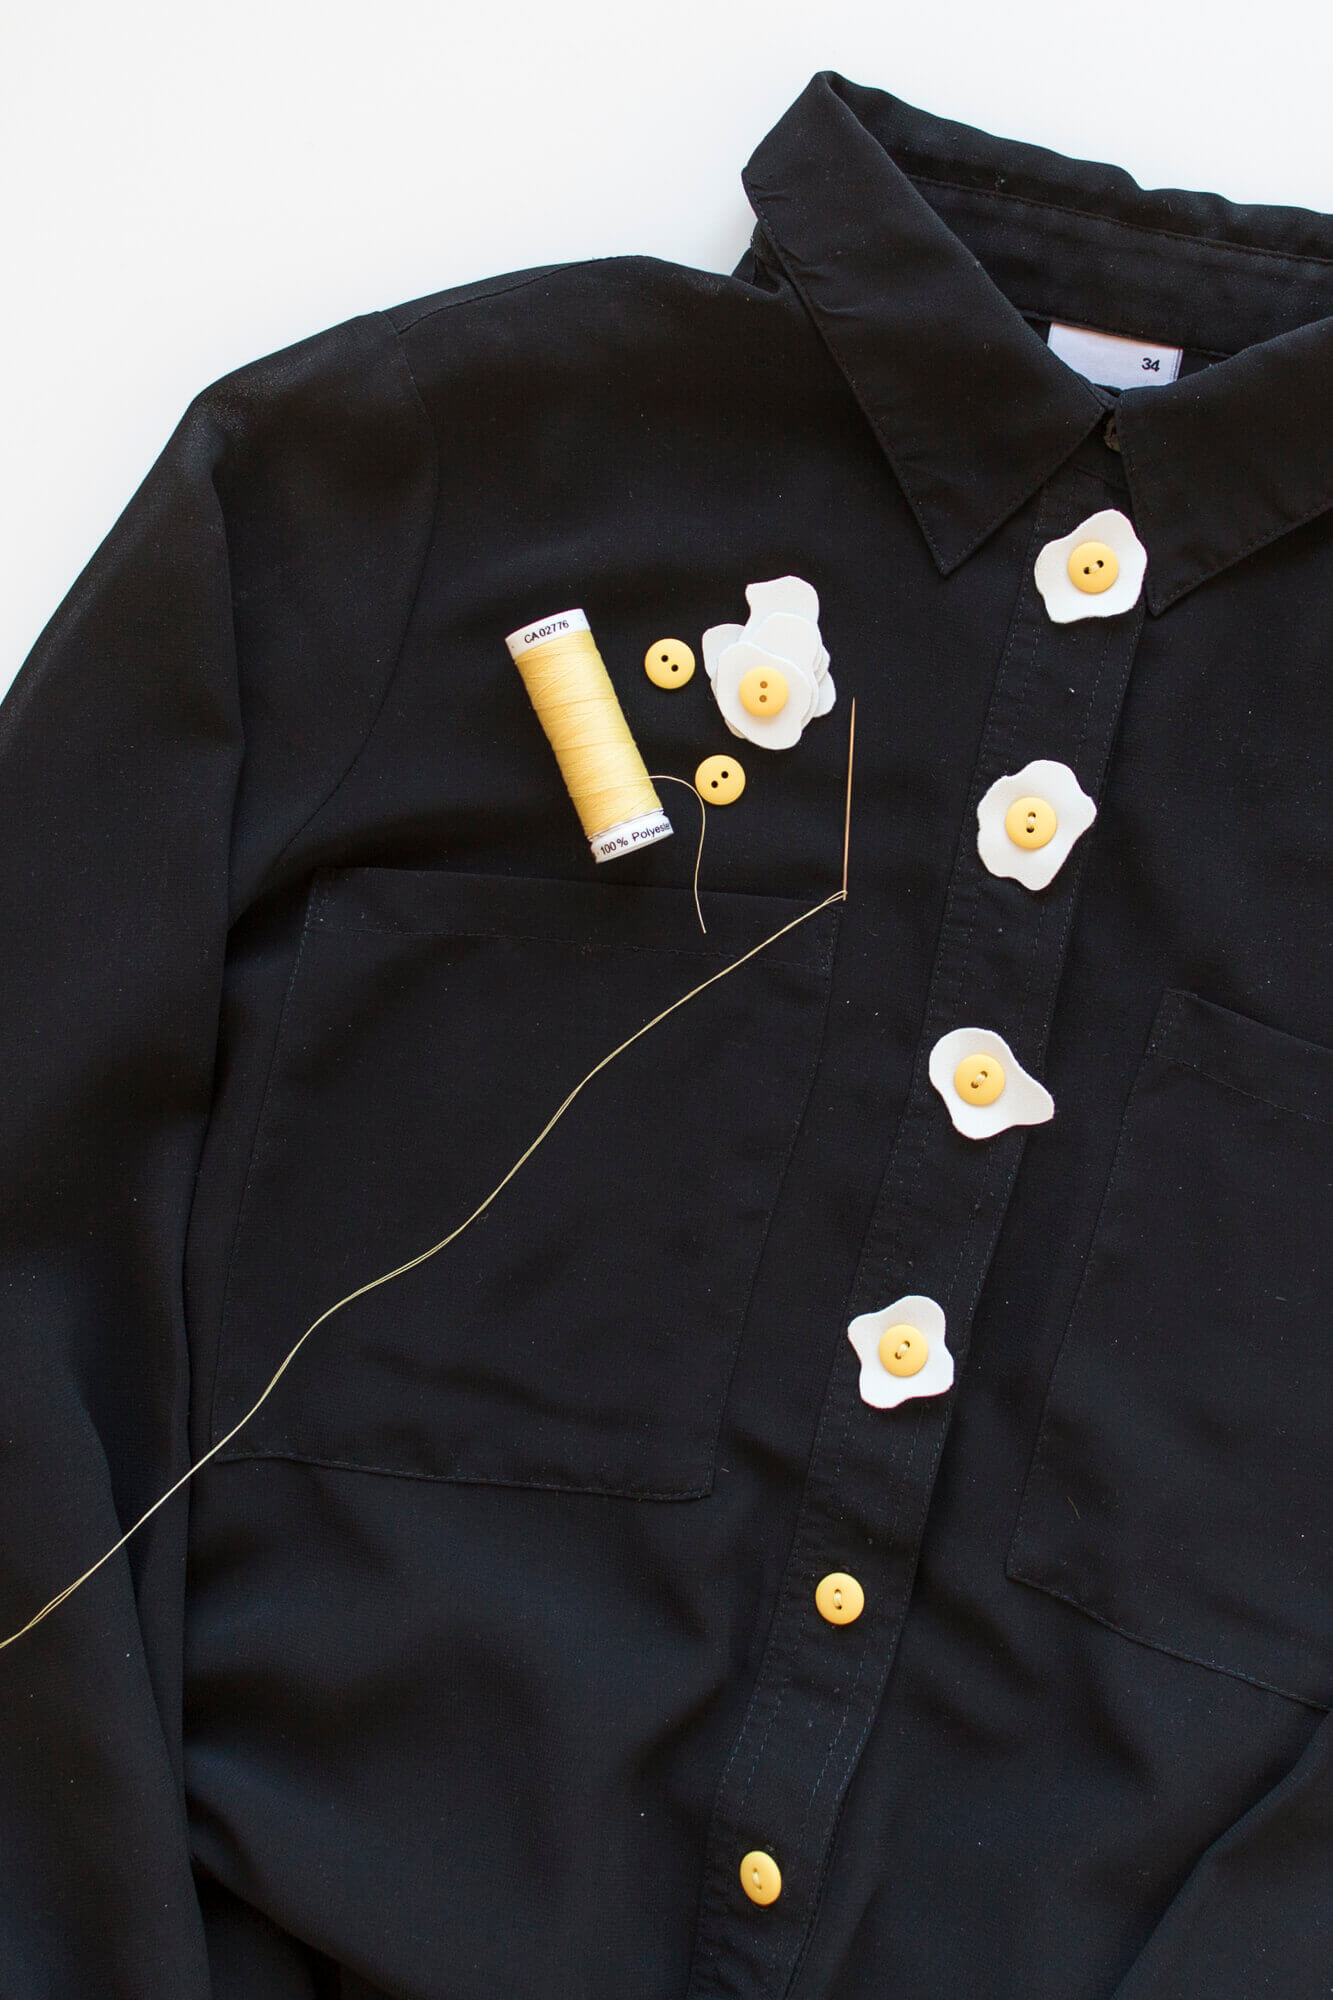 Fried eggs button shirt | Anna María